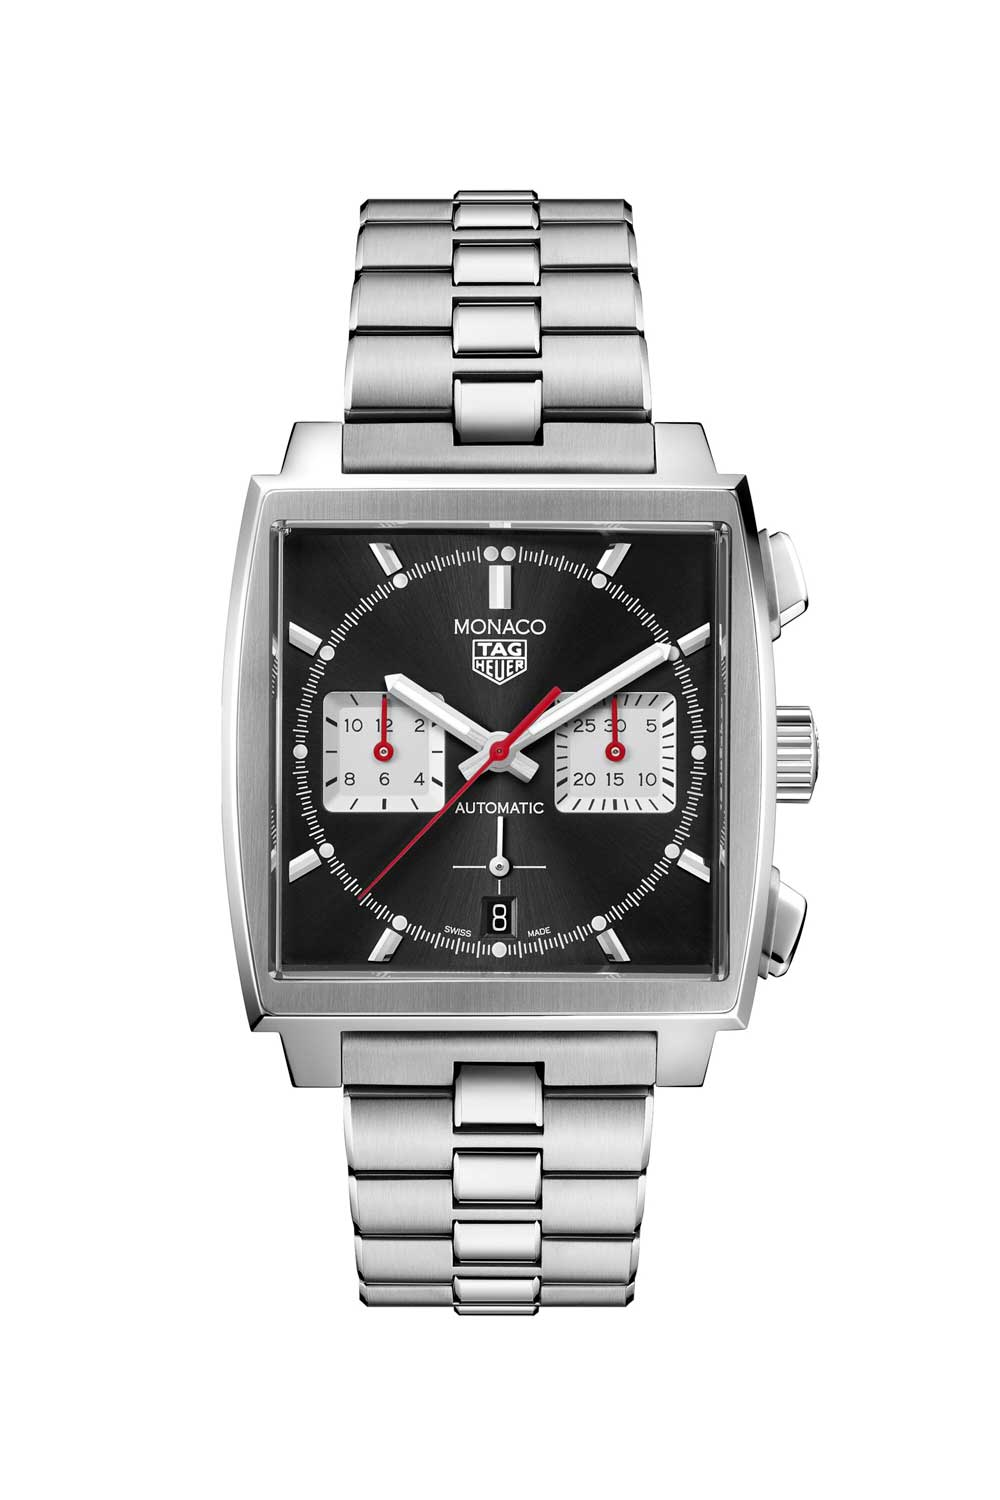 The TAG Heuer Monaco Chronograph 39mm Calibre Heuer 02 Automatic ref. CBL2113.BA0644 with the black dial